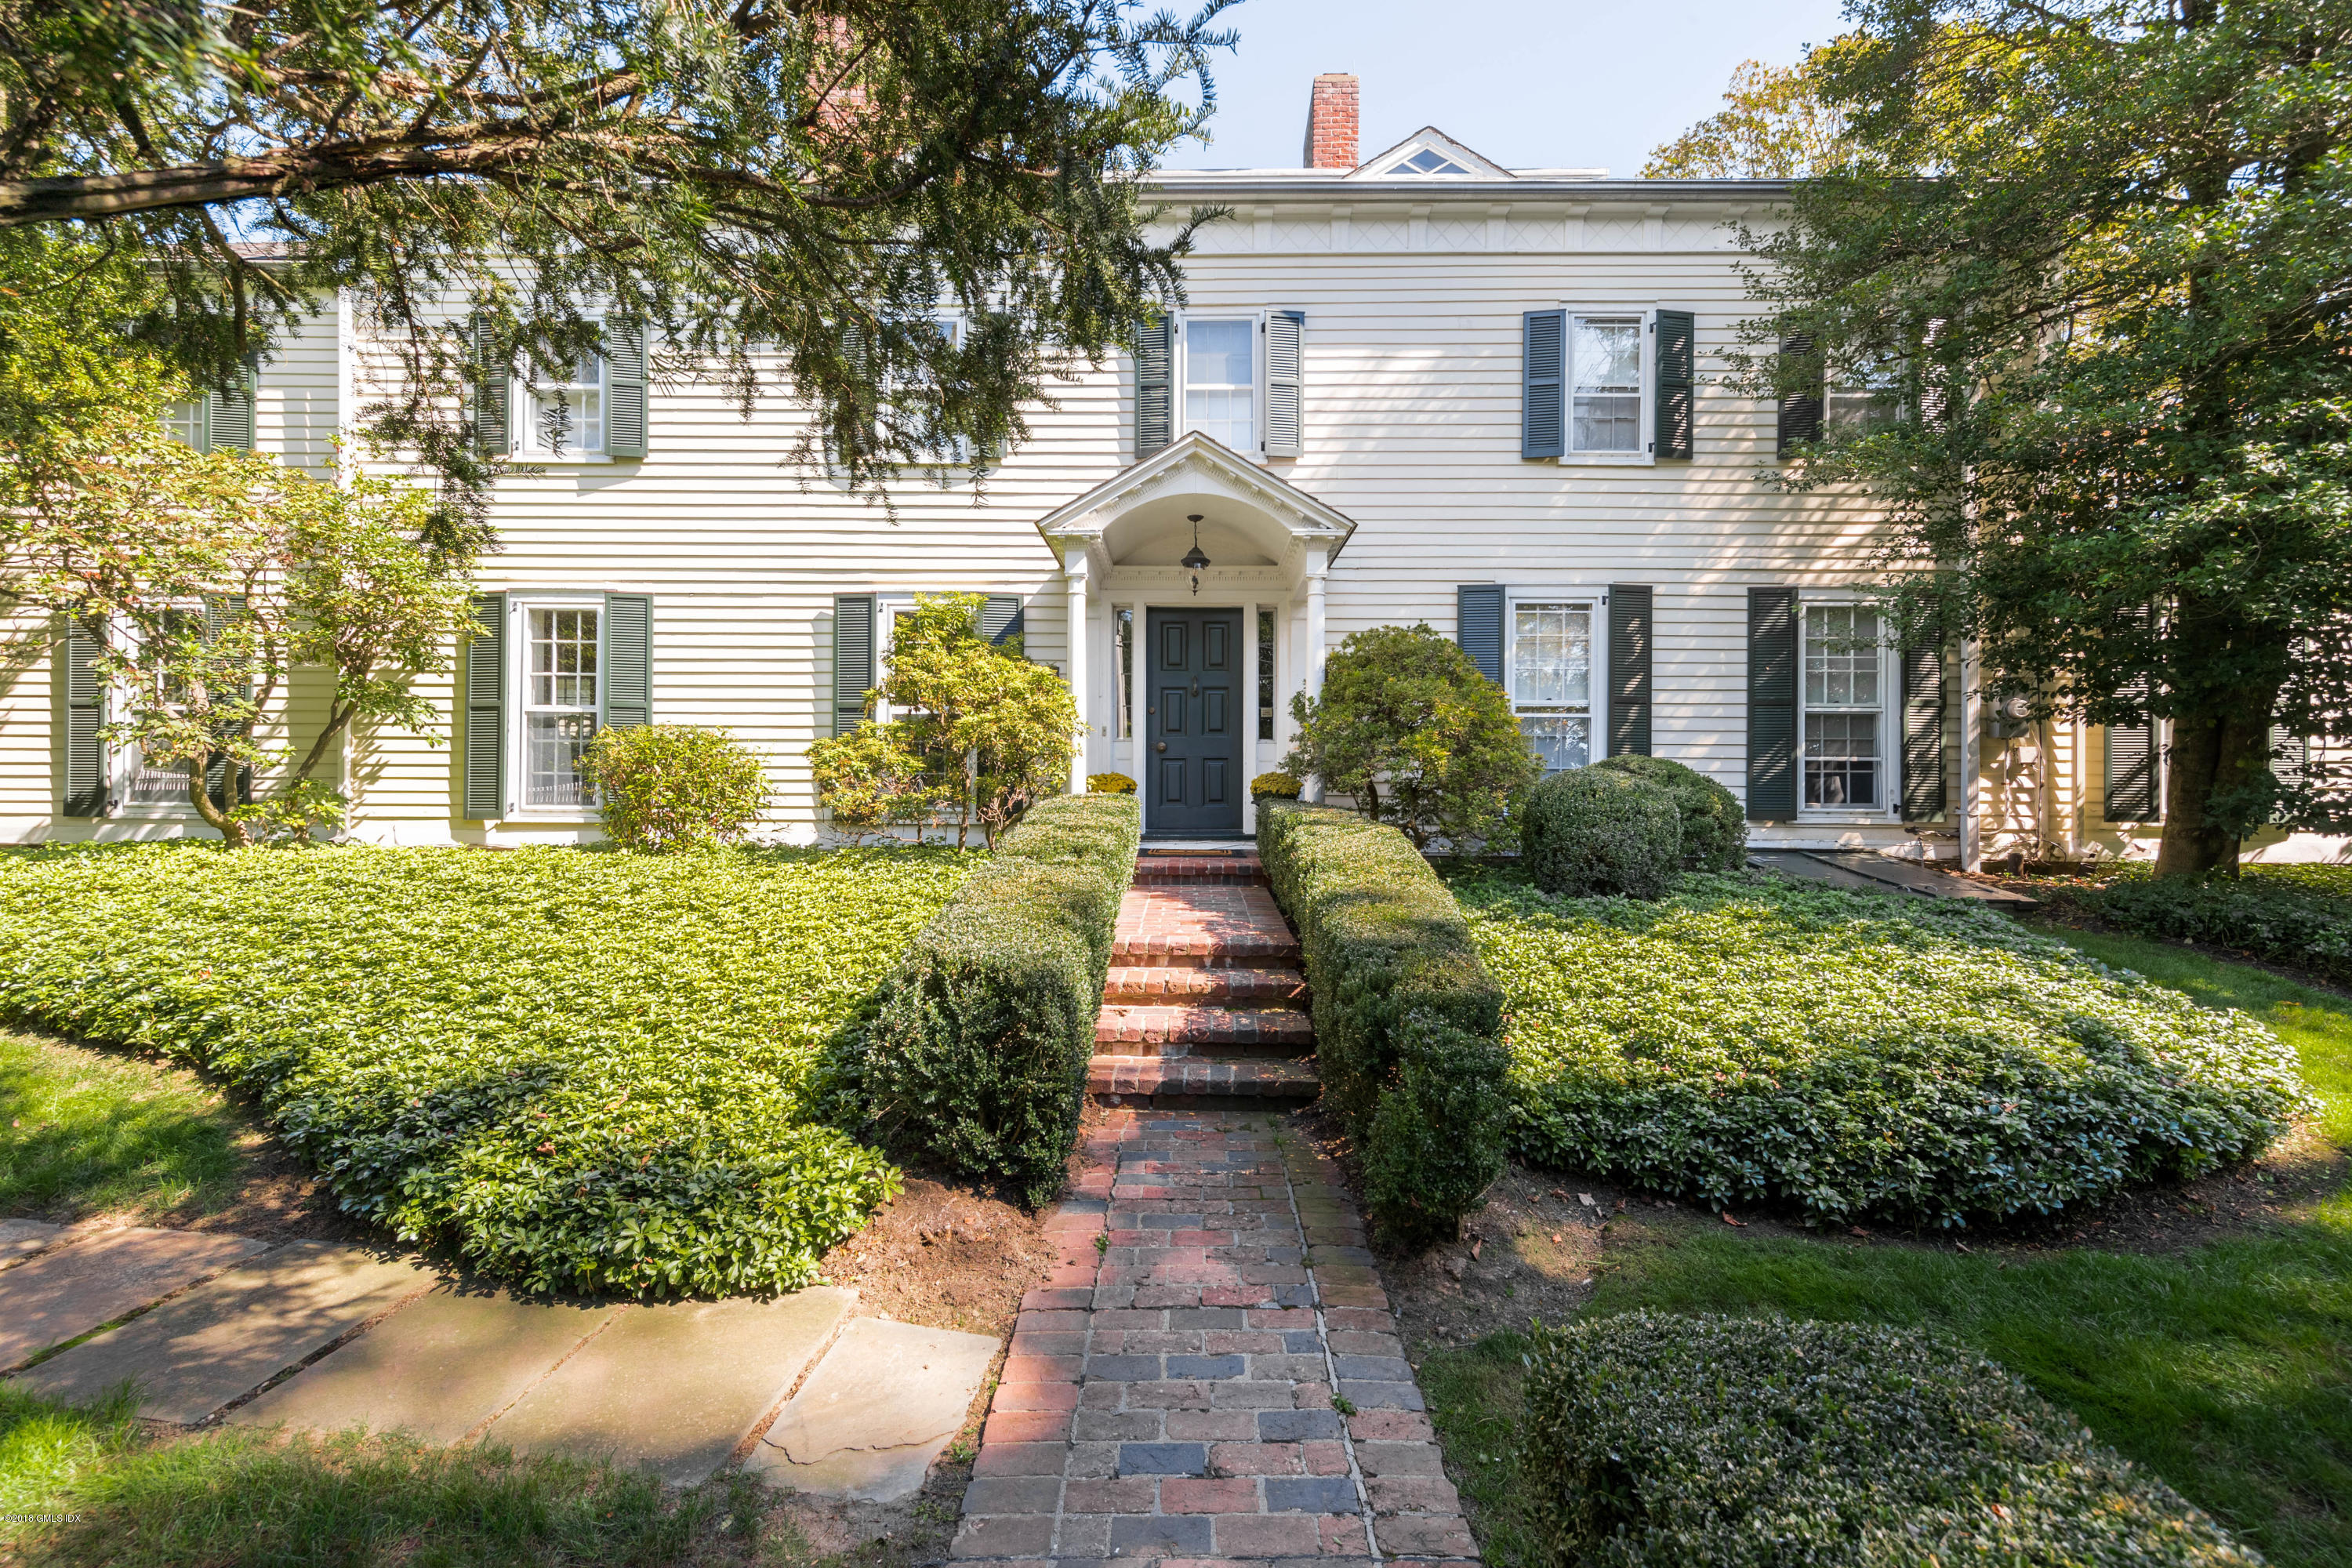 441 Round Hill Road,Greenwich,Connecticut 06831,4 Bedrooms Bedrooms,5 BathroomsBathrooms,Single family,Round Hill,105094